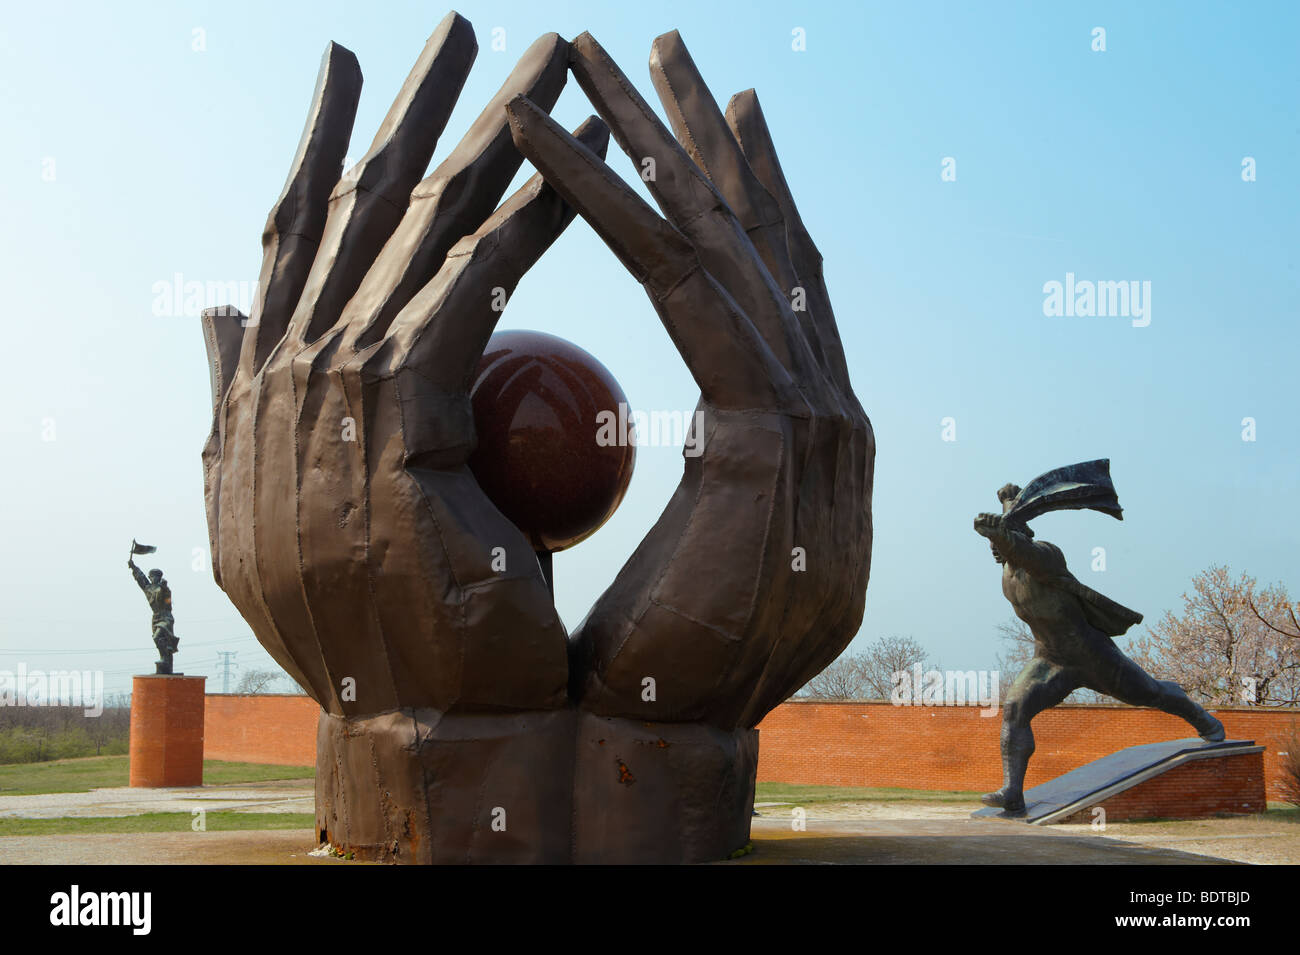 Statue in the Memento Sculpture Park - Communist Sculptures museum - Budapest - Hungary - Stock Image